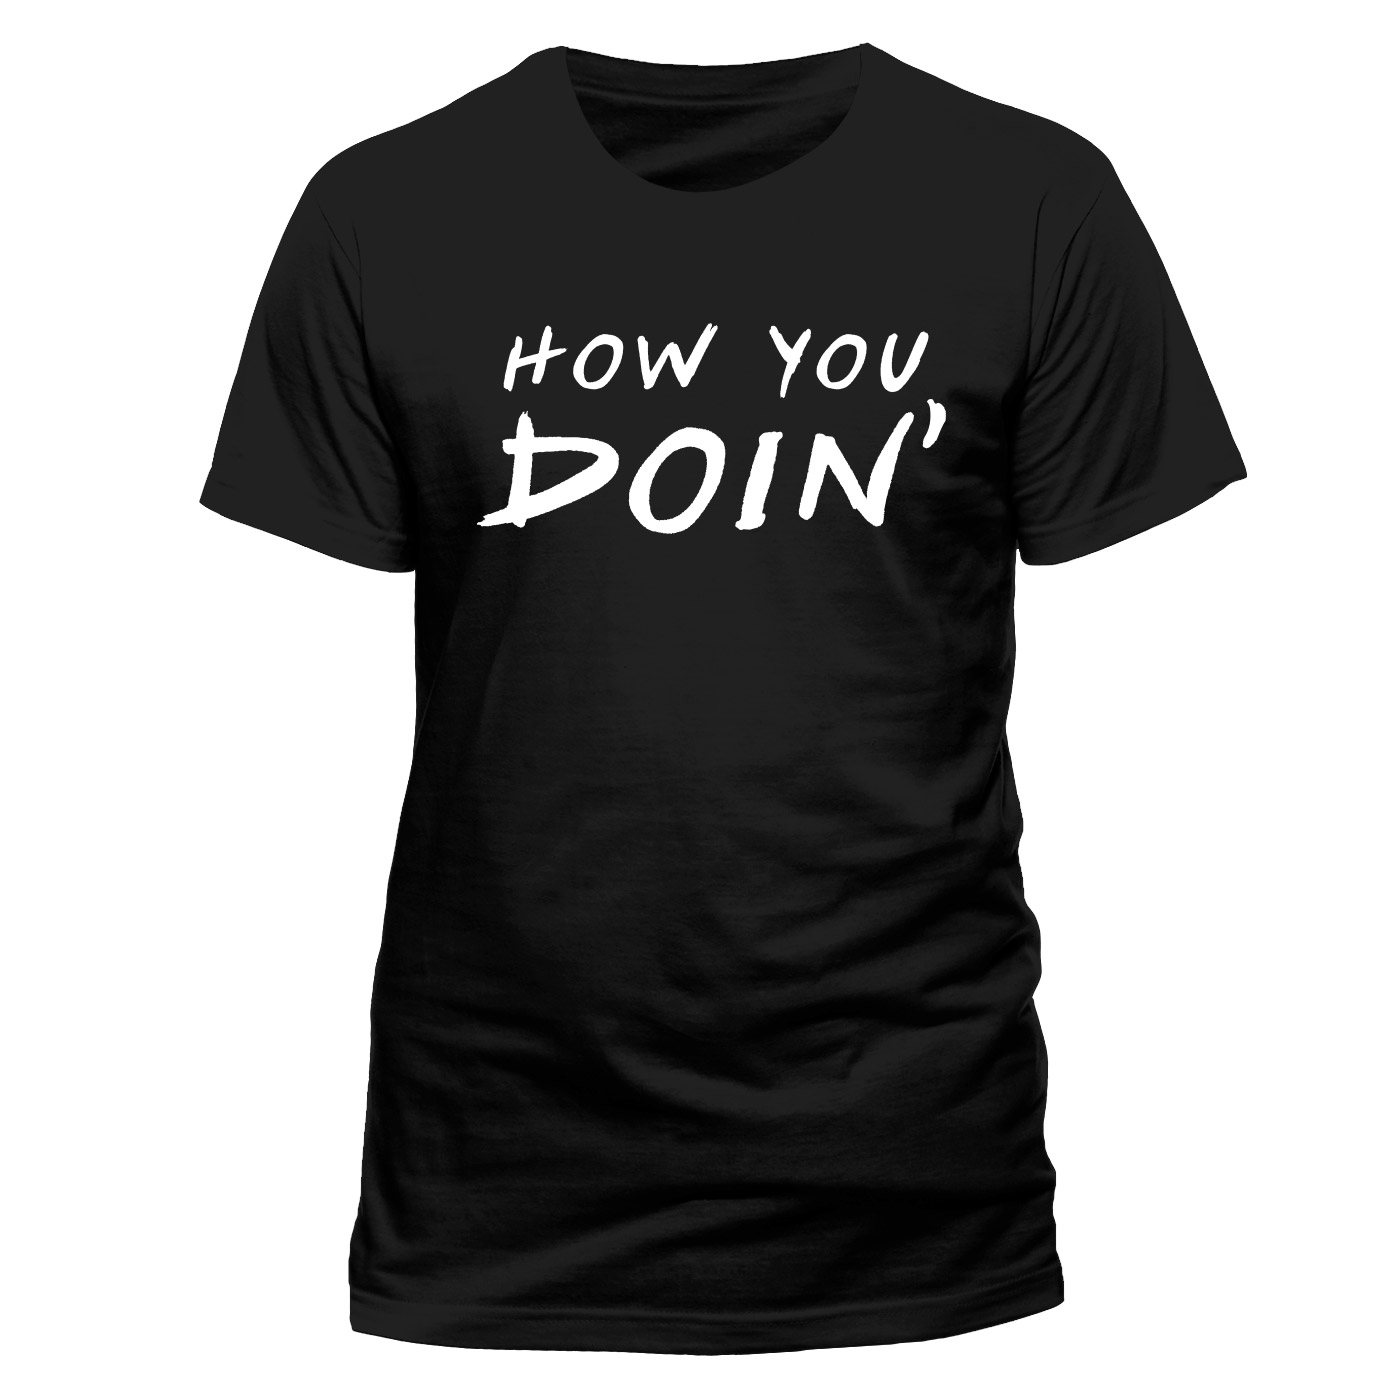 PE17398TSB-Friends-HowYouDoin-TS-black